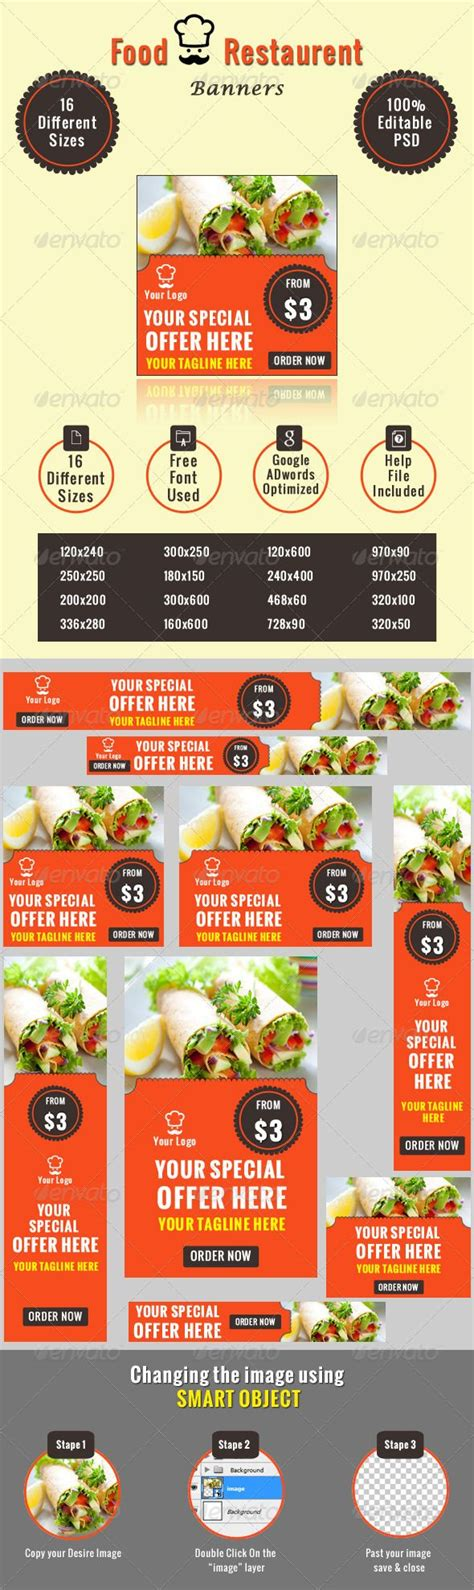 food banner template food restaurant banners restaurant banners and banner